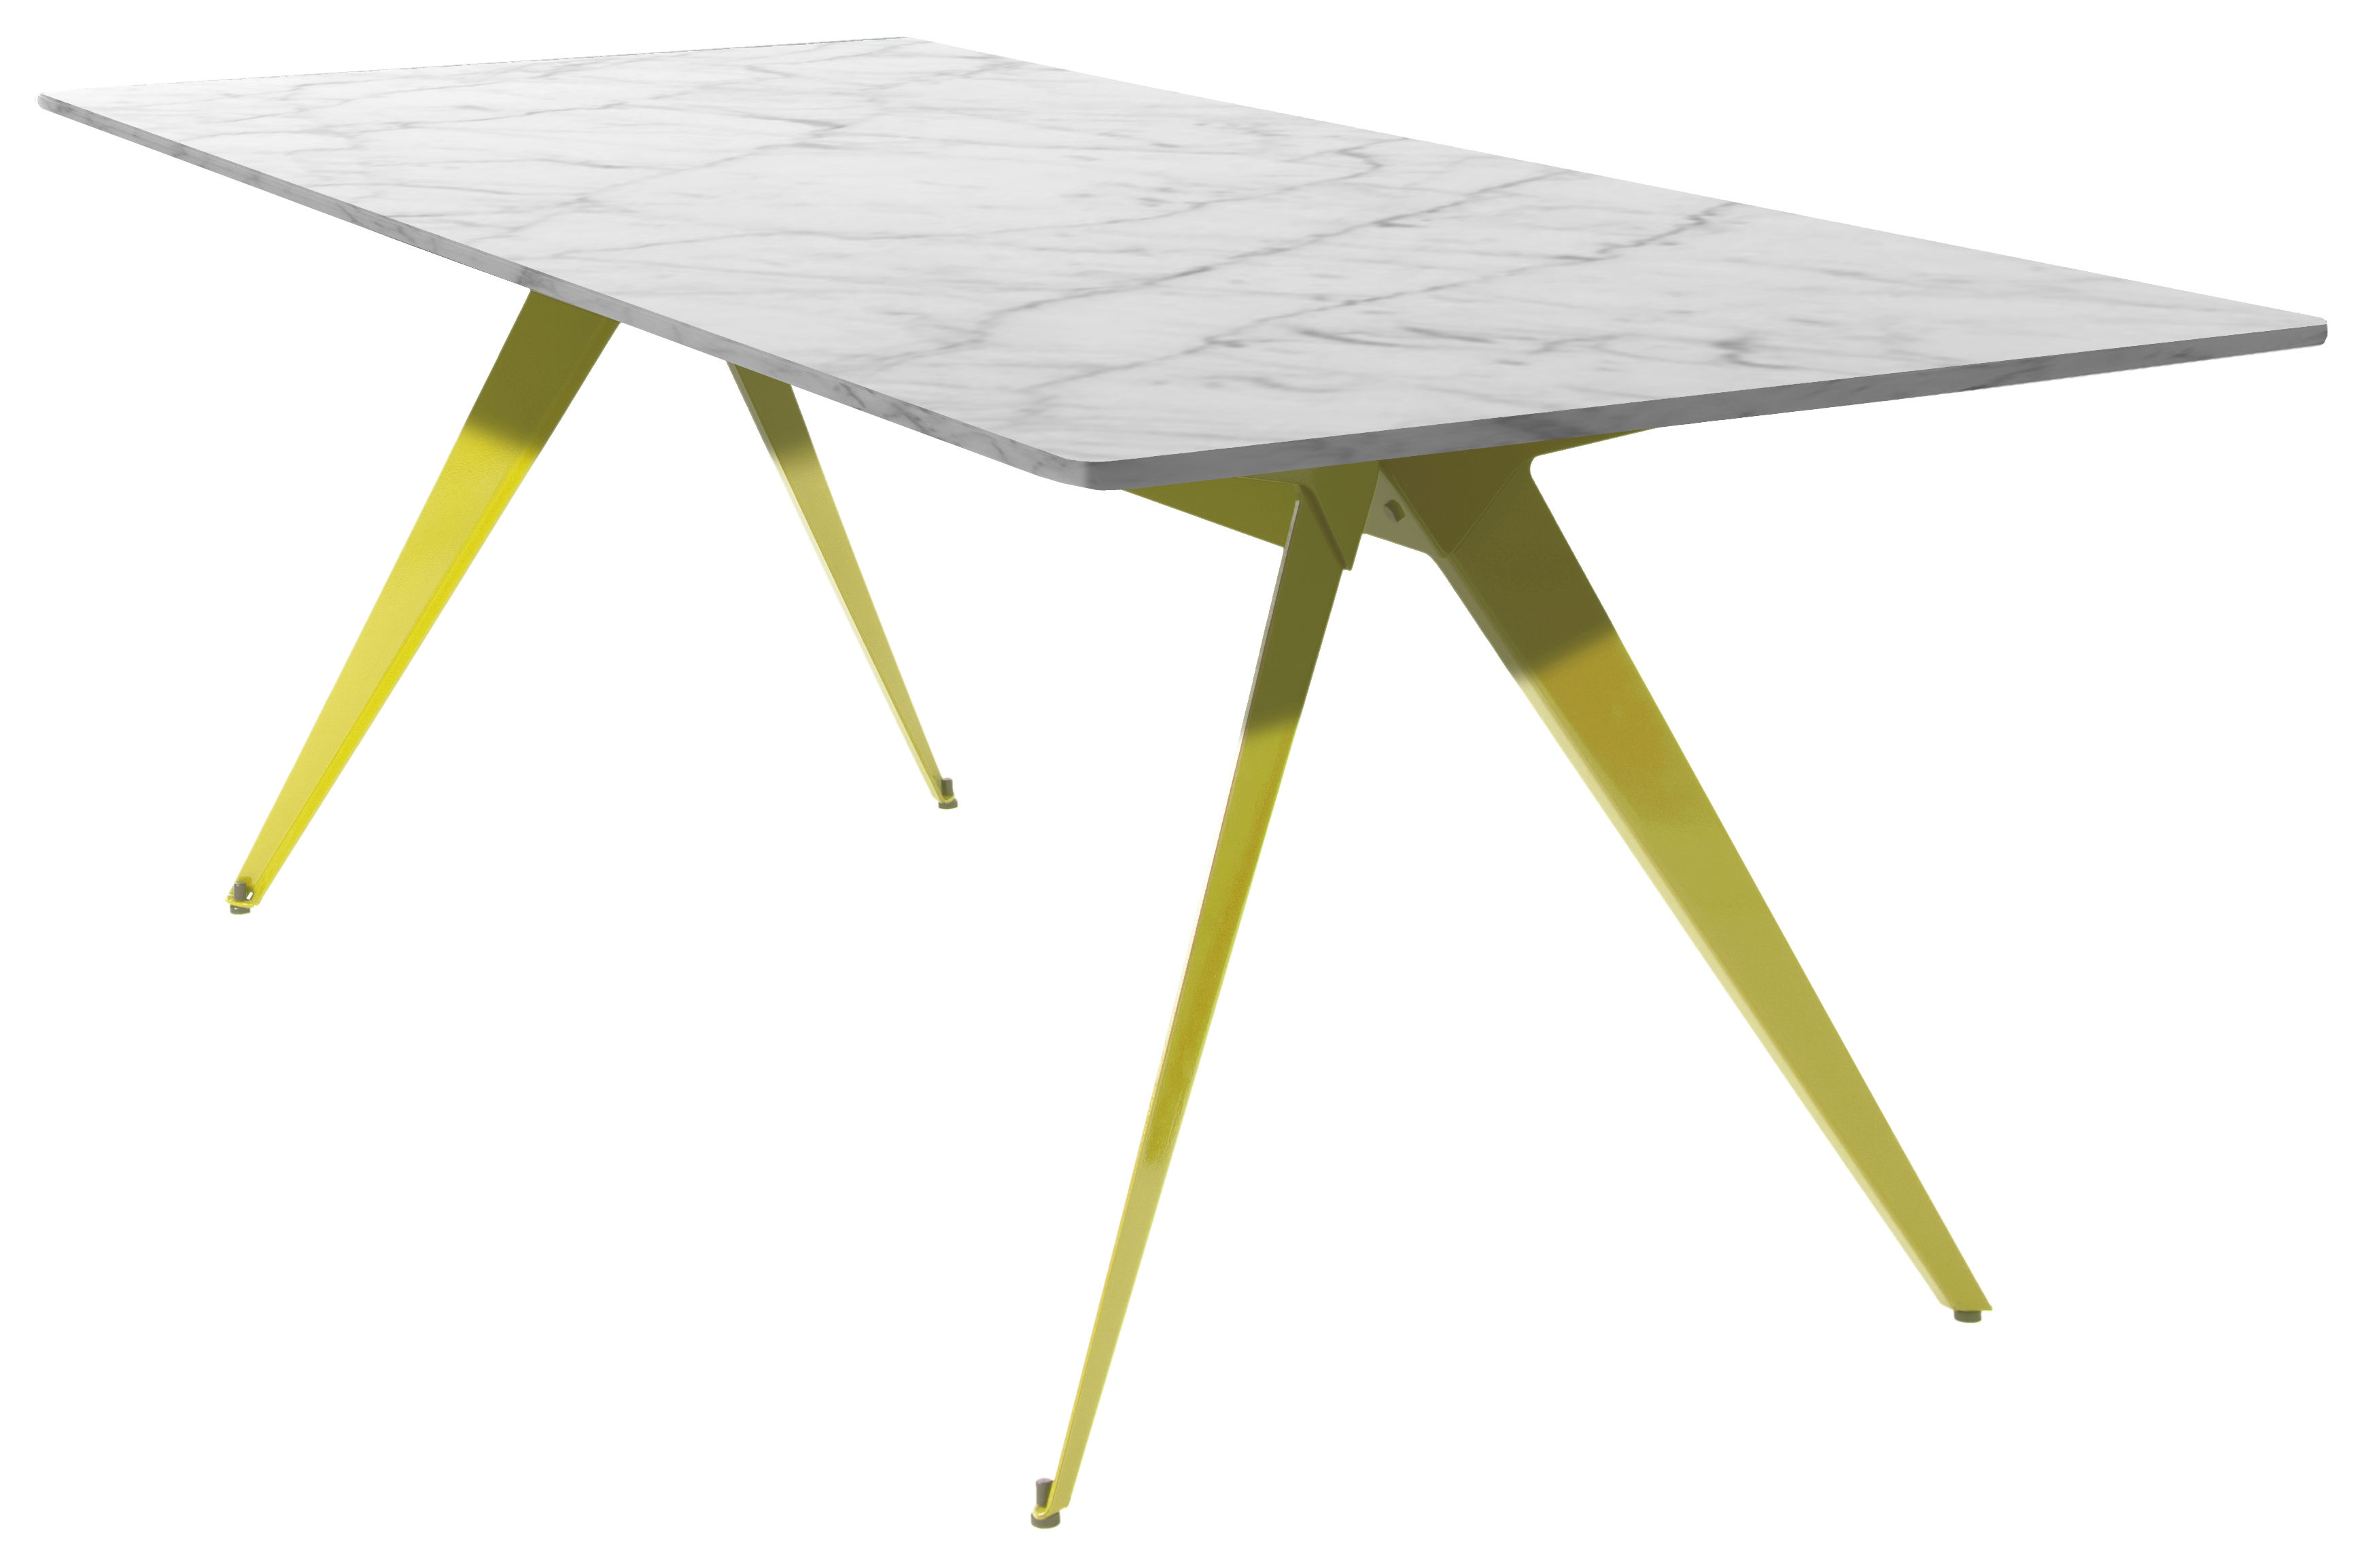 Table salle a manger marbre design for Table extensible marbre